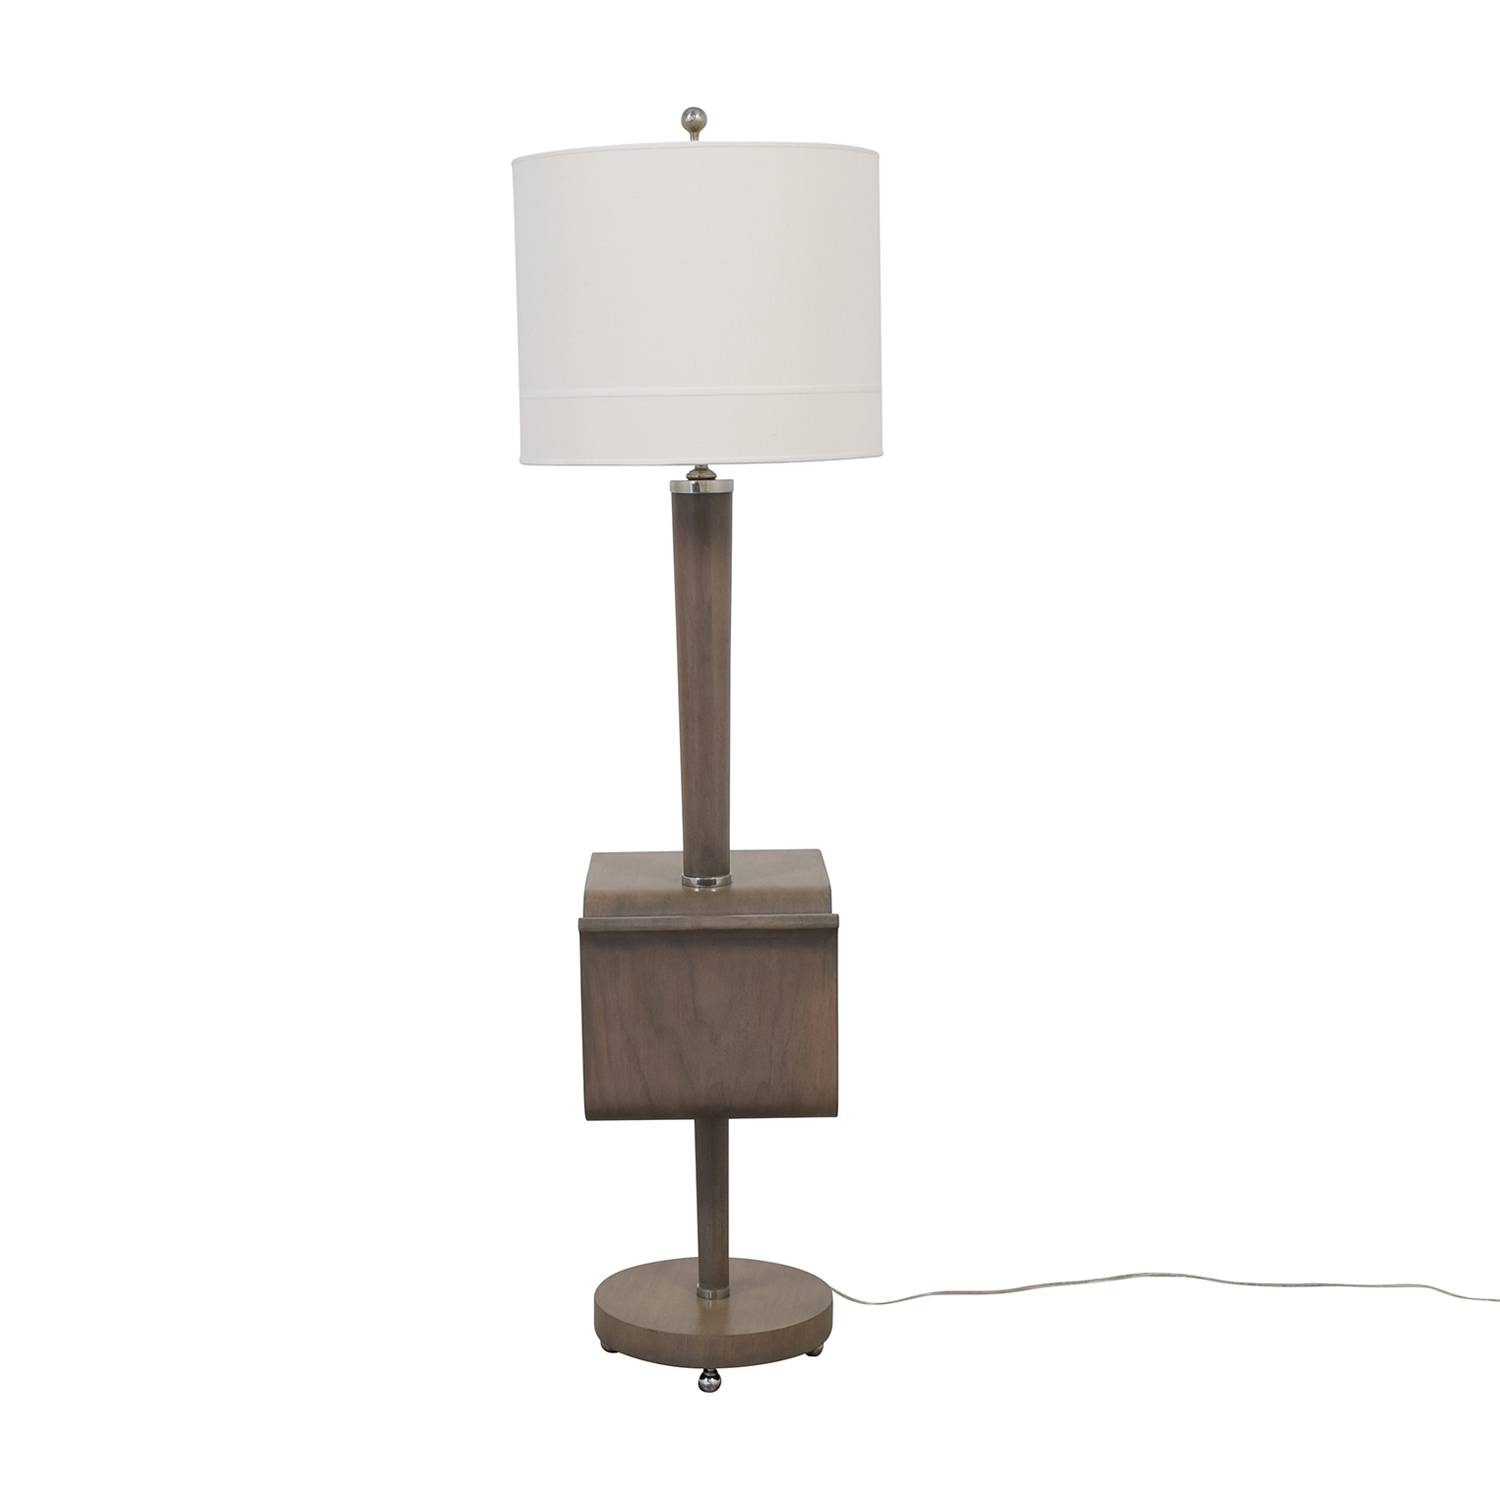 Stonebrook Interiors Stonebrook Interiors Floor Lamp with Magazine Holder on sale